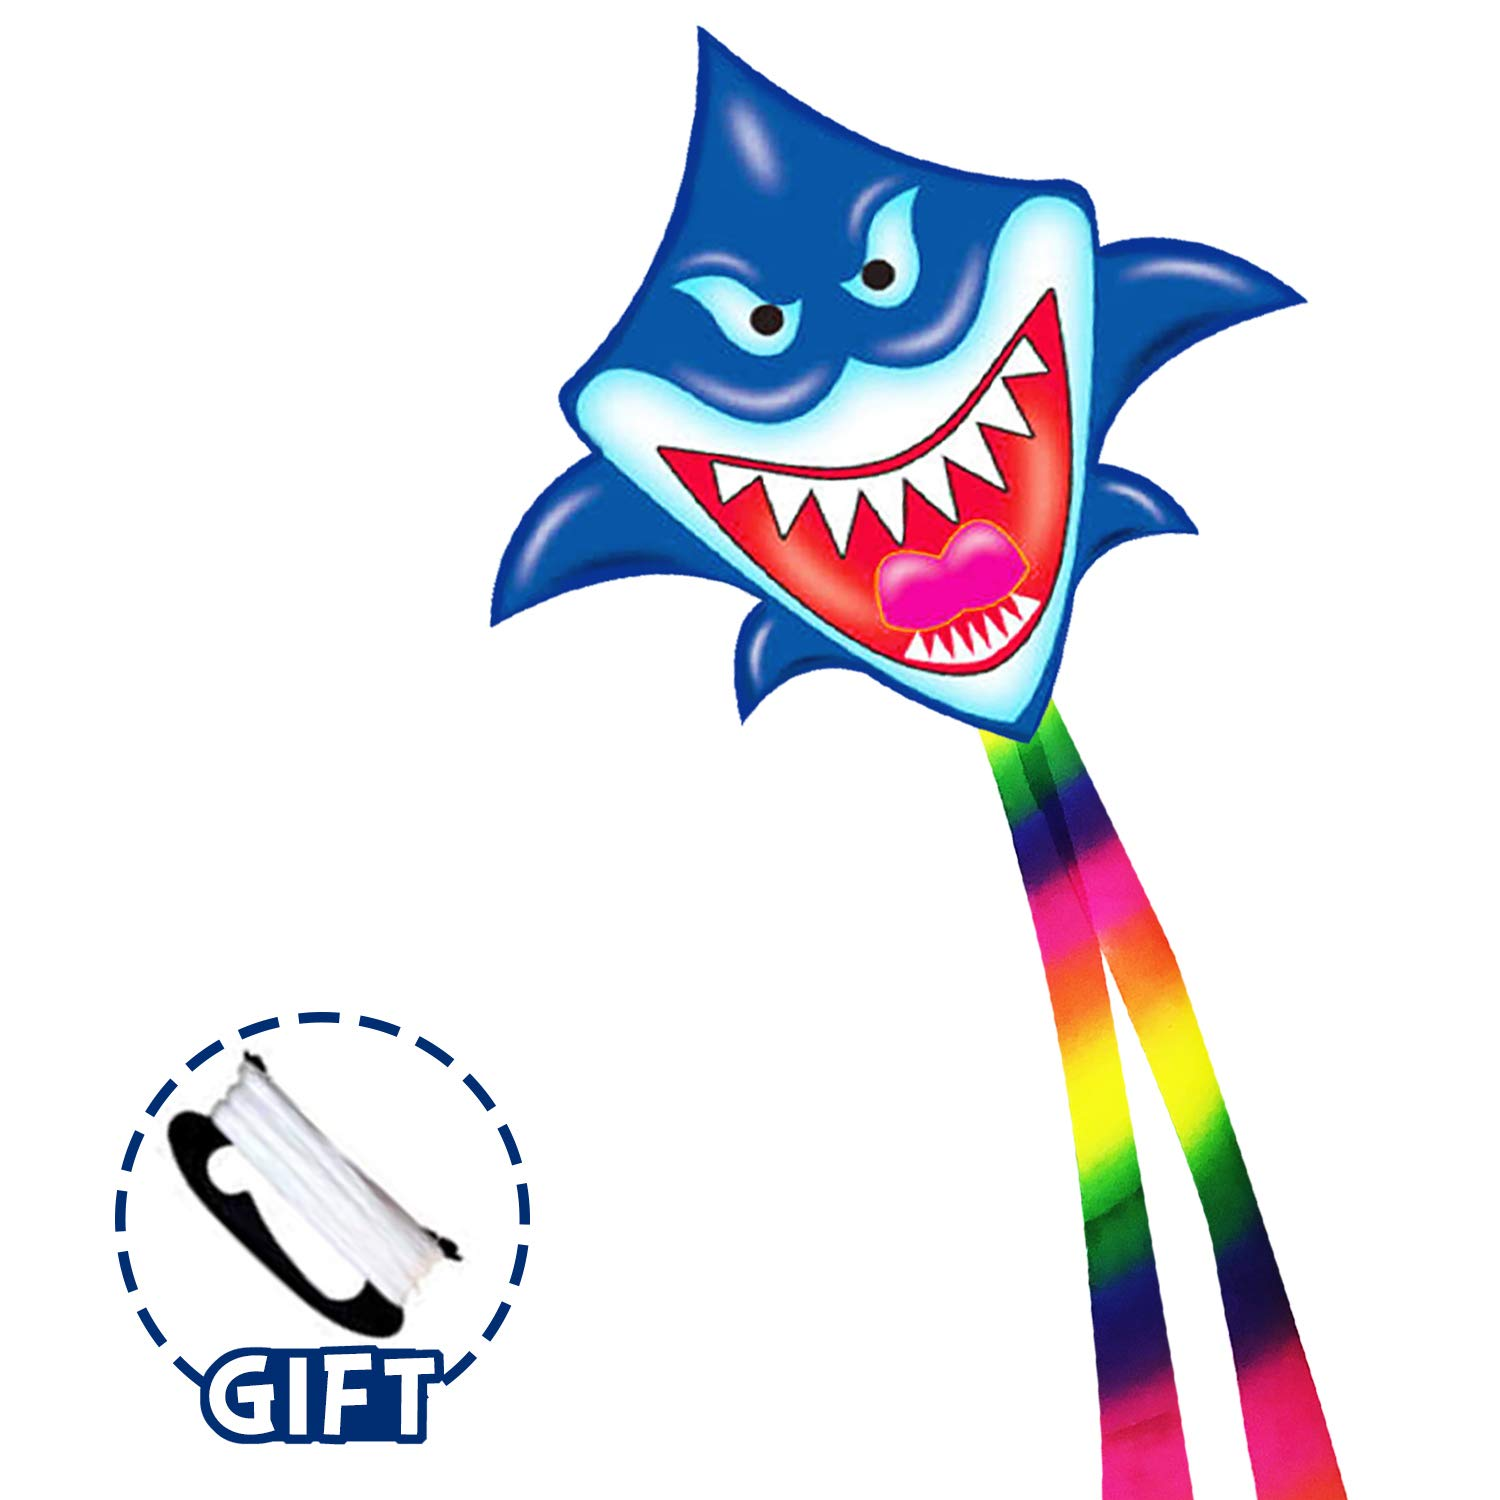 Flying Toy Kites - Shark Kite for Kids Adults Outdoor Beach Park Playing - Easy to Carry & Assemble & Fly -100 Meter String with Handle, Great Gift for 5 - 60 Year Old Boys and Girls